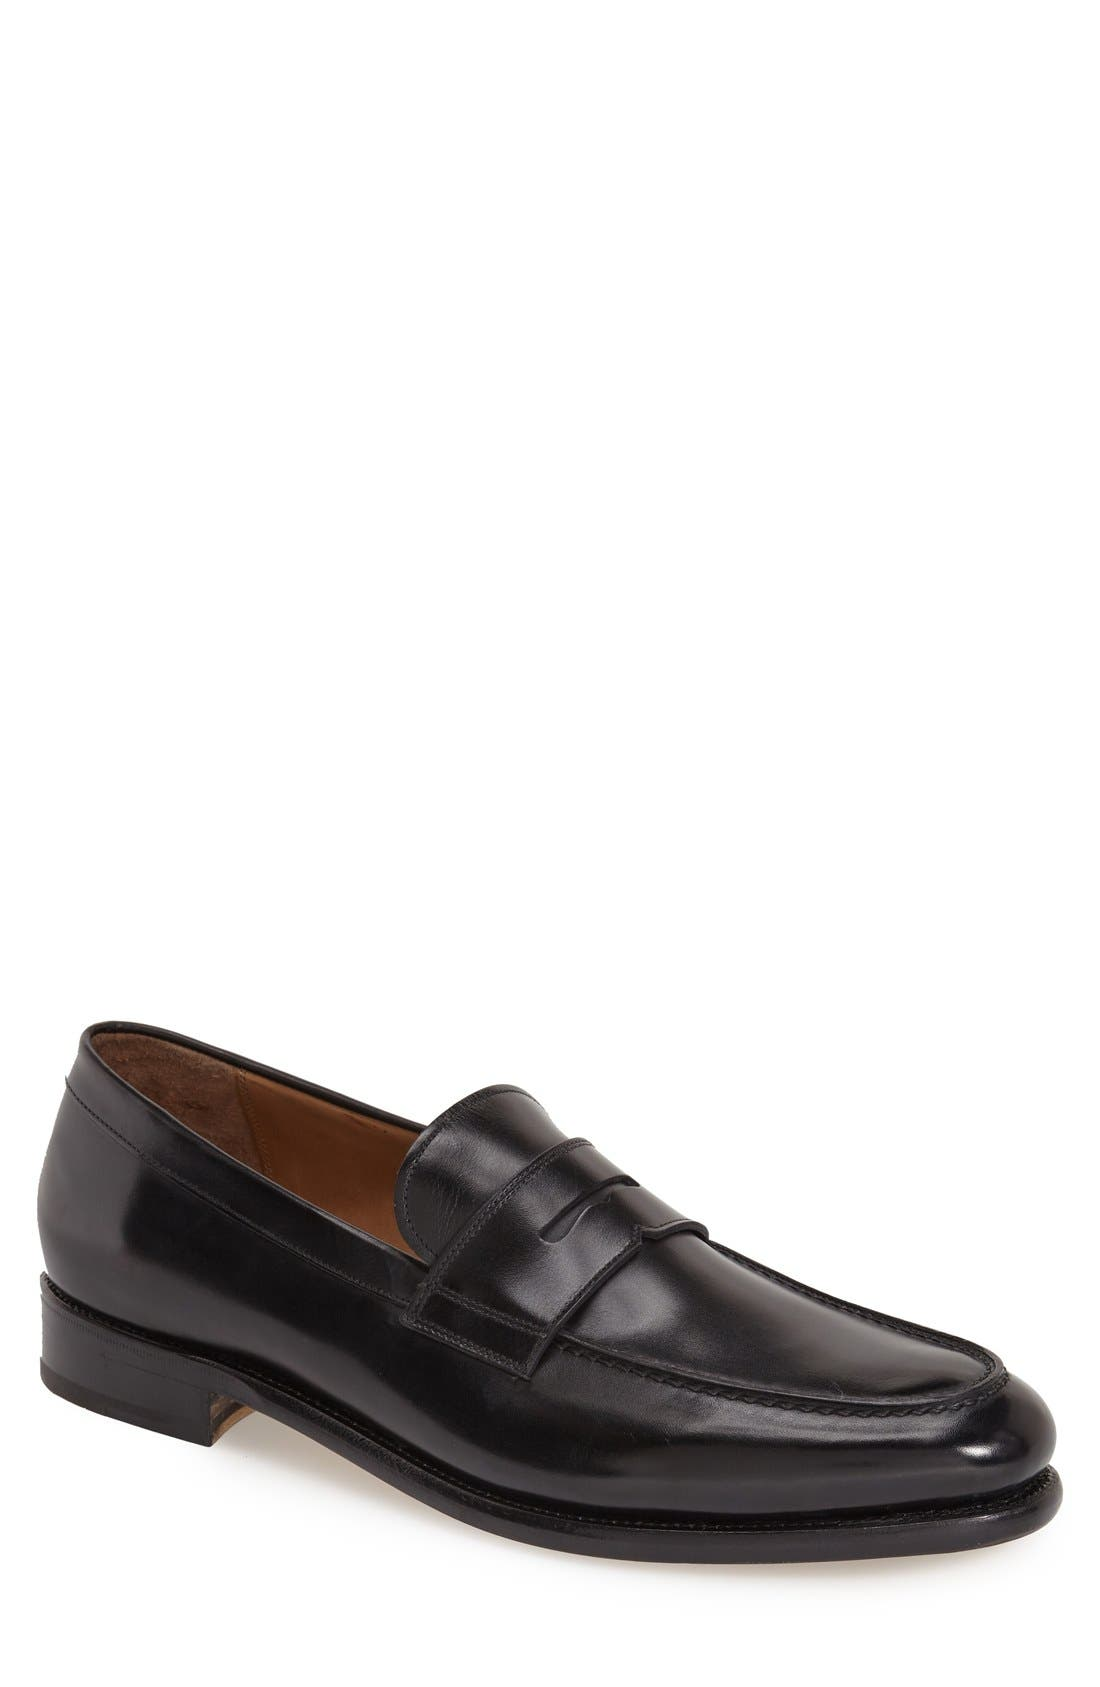 'Rinaldo' Penny Loafer,                         Main,                         color, 001